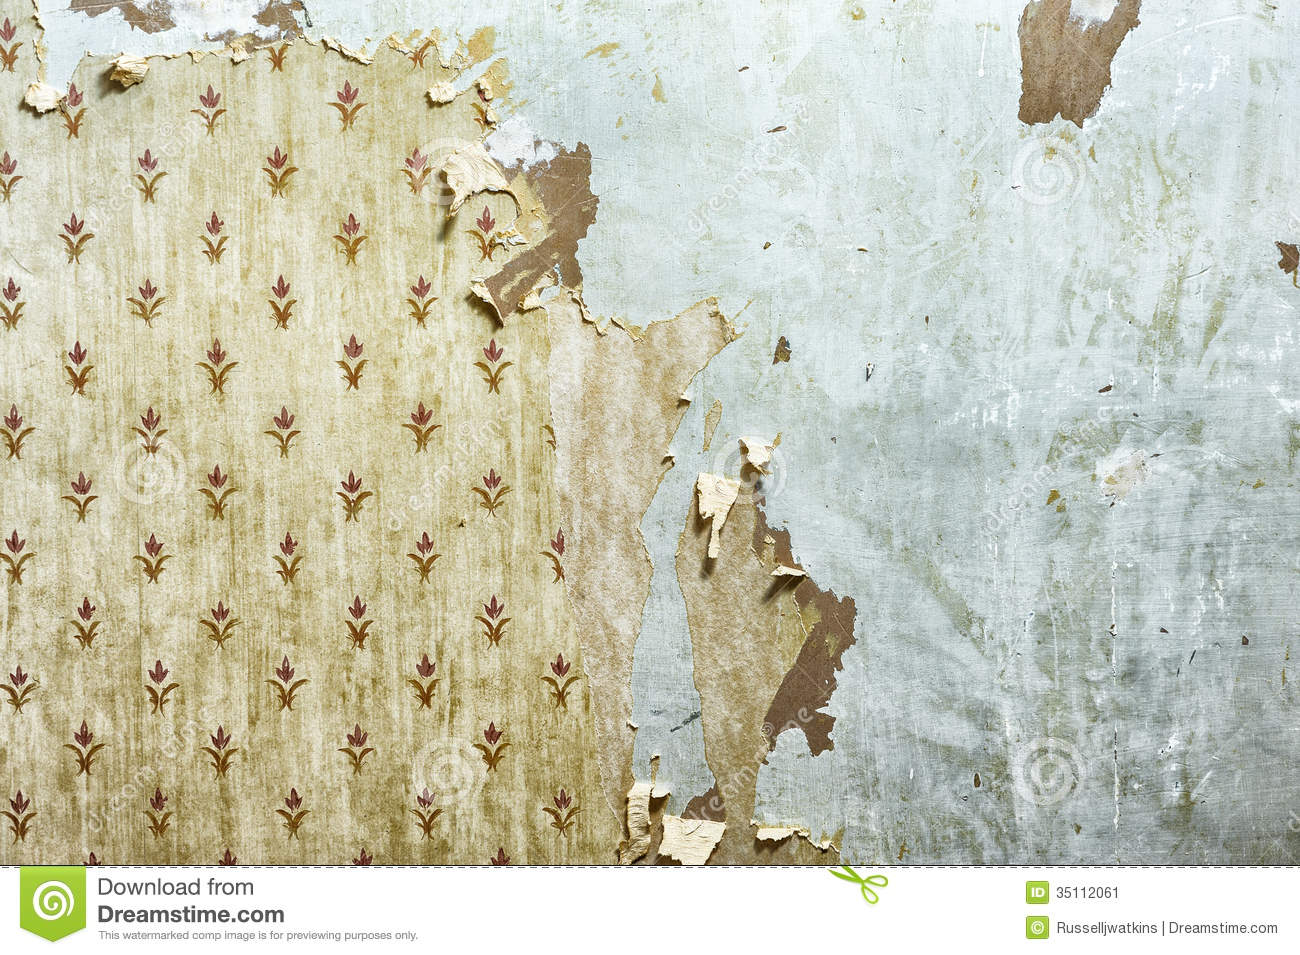 Peel Off Wallpaper New Of Wallpaper Peeling Off Sheetrock Walls Images